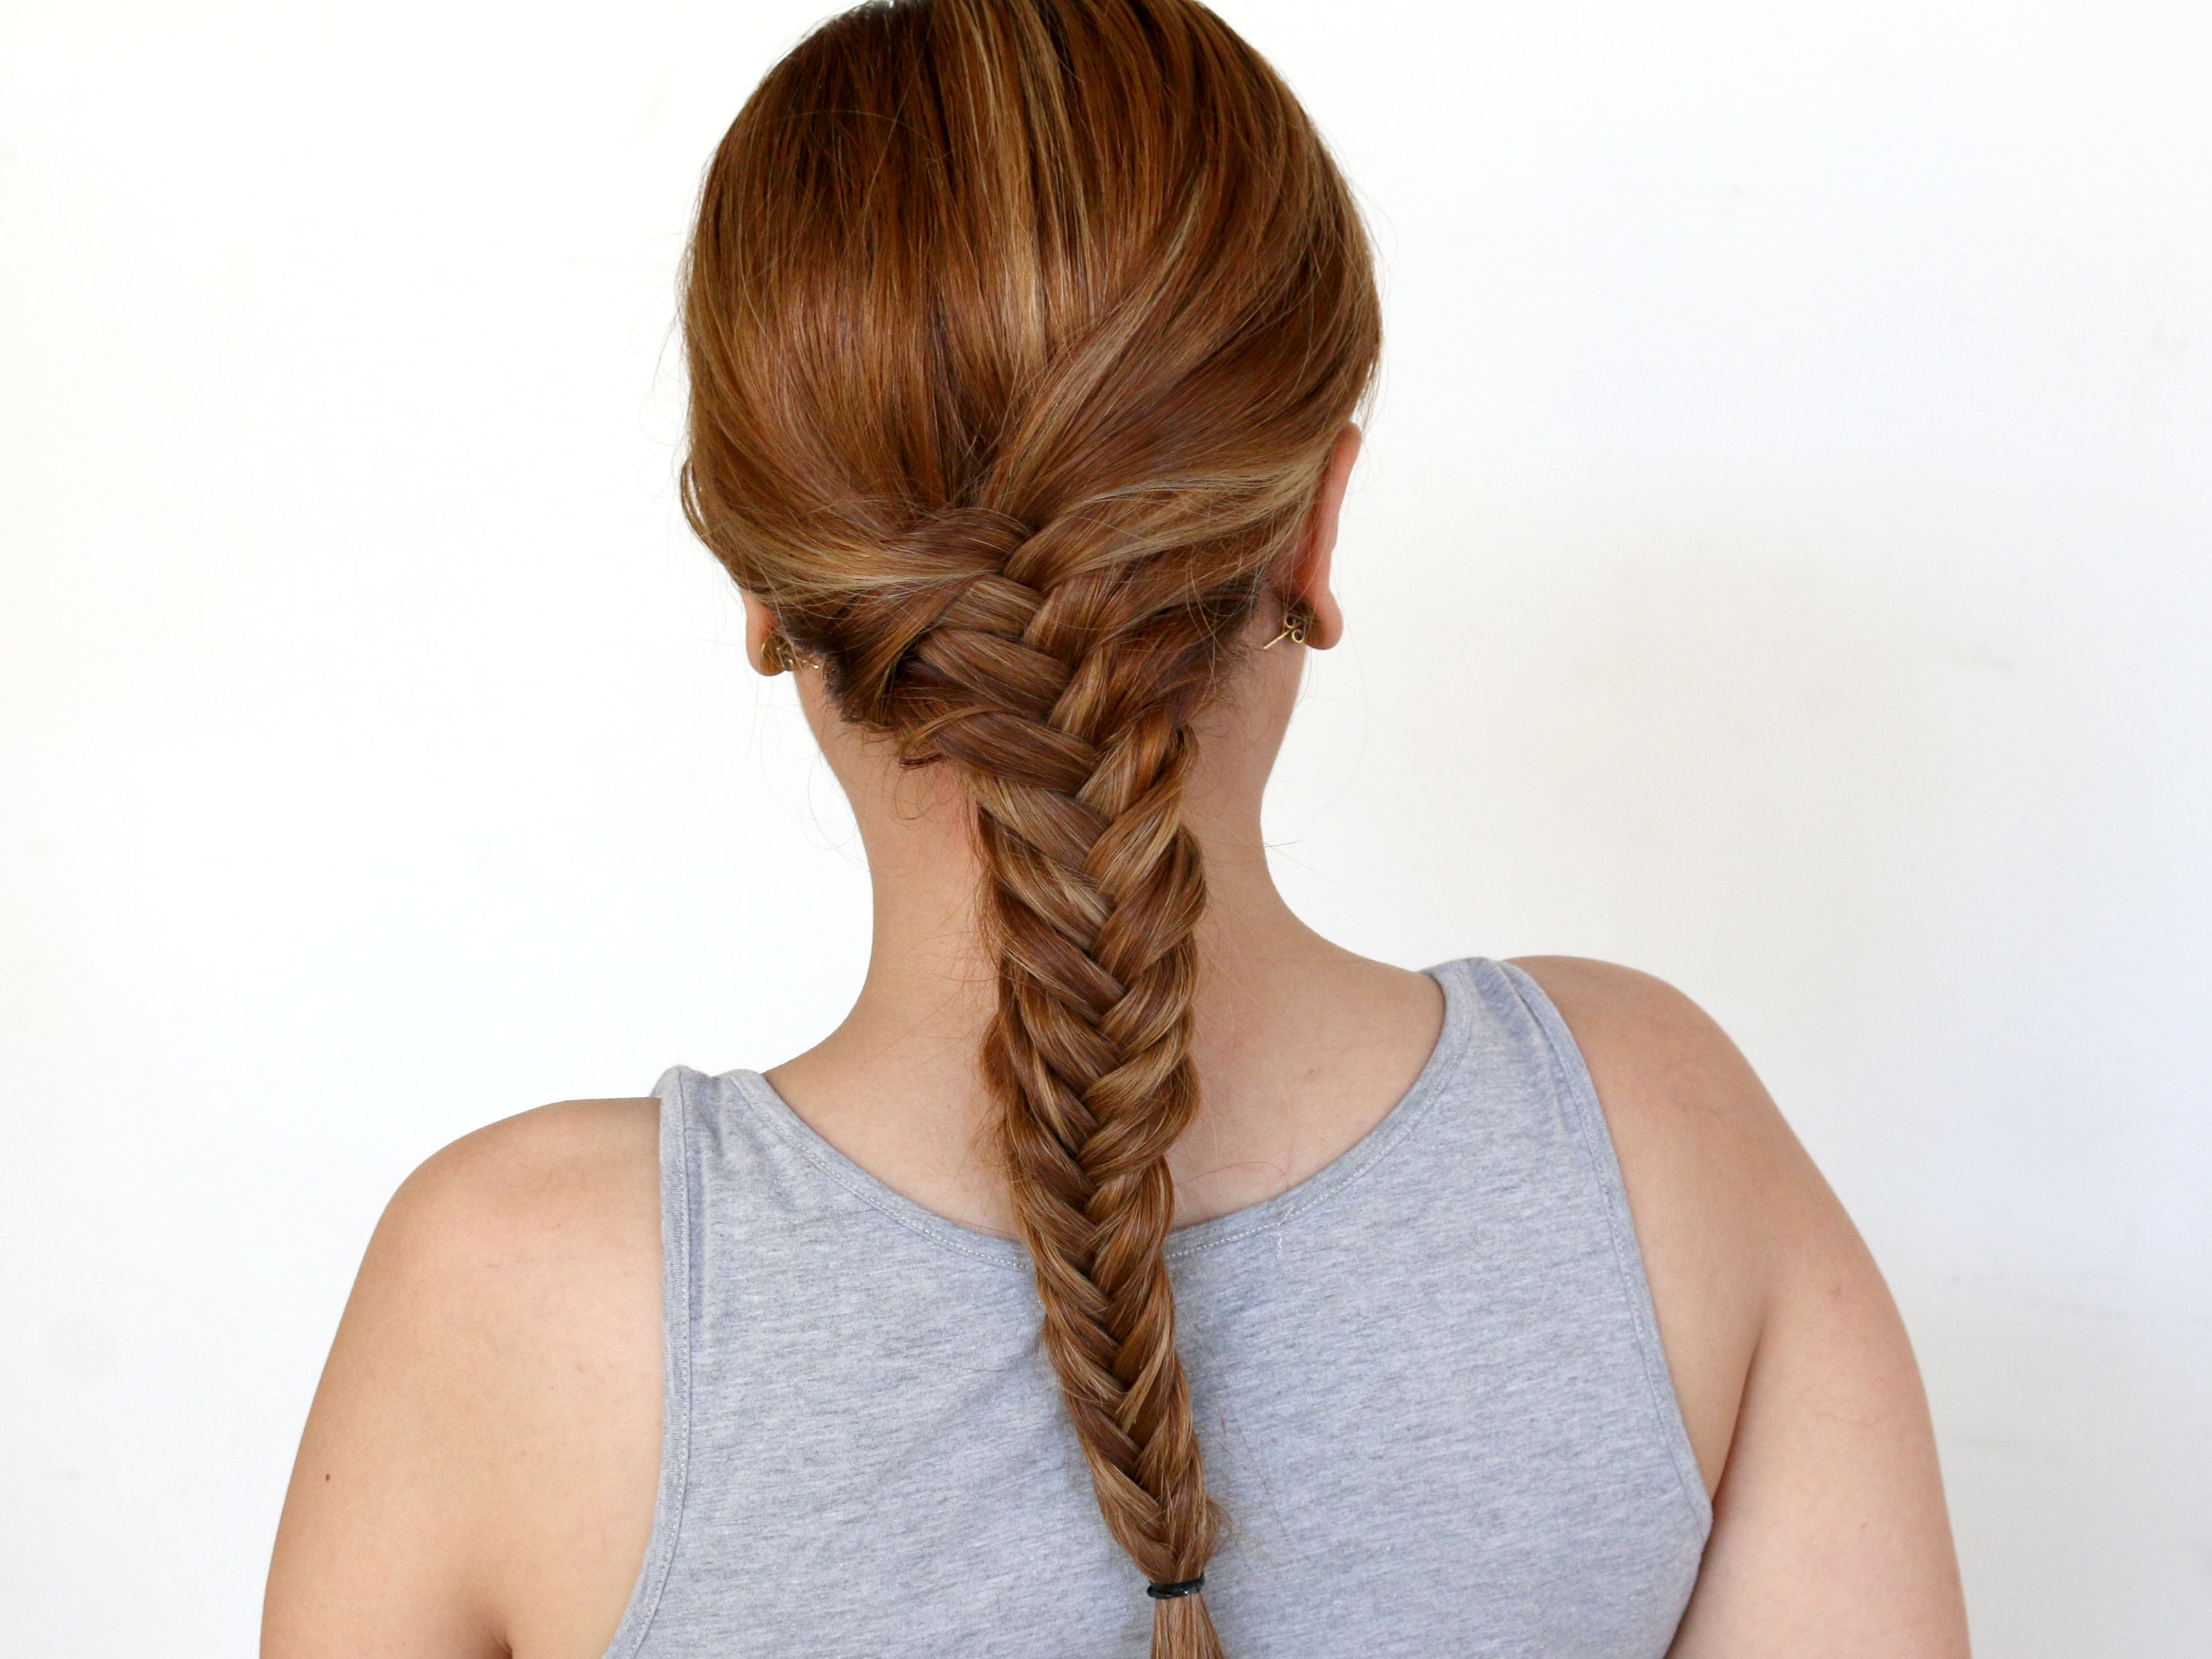 3 easy ways to braid your hair while growing out a pixie